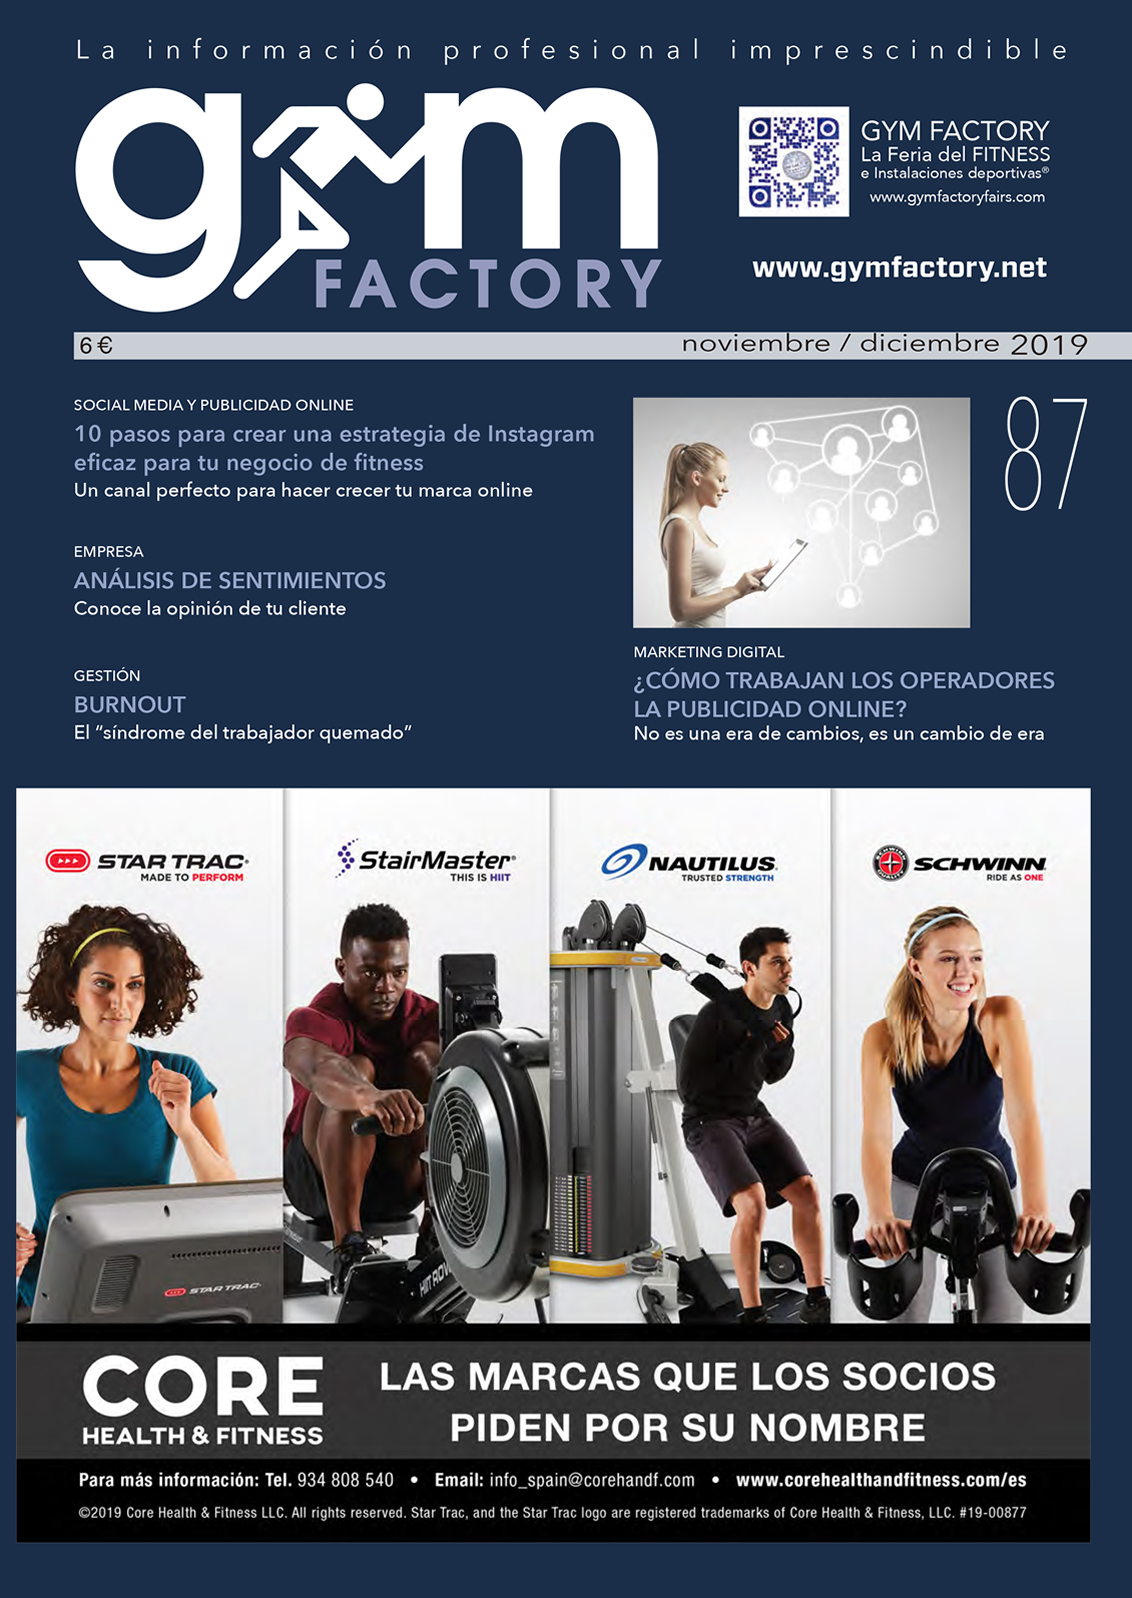 //www.gymfactory.net/wp-content/uploads/2019/11/gymfactory-87-gestion.png